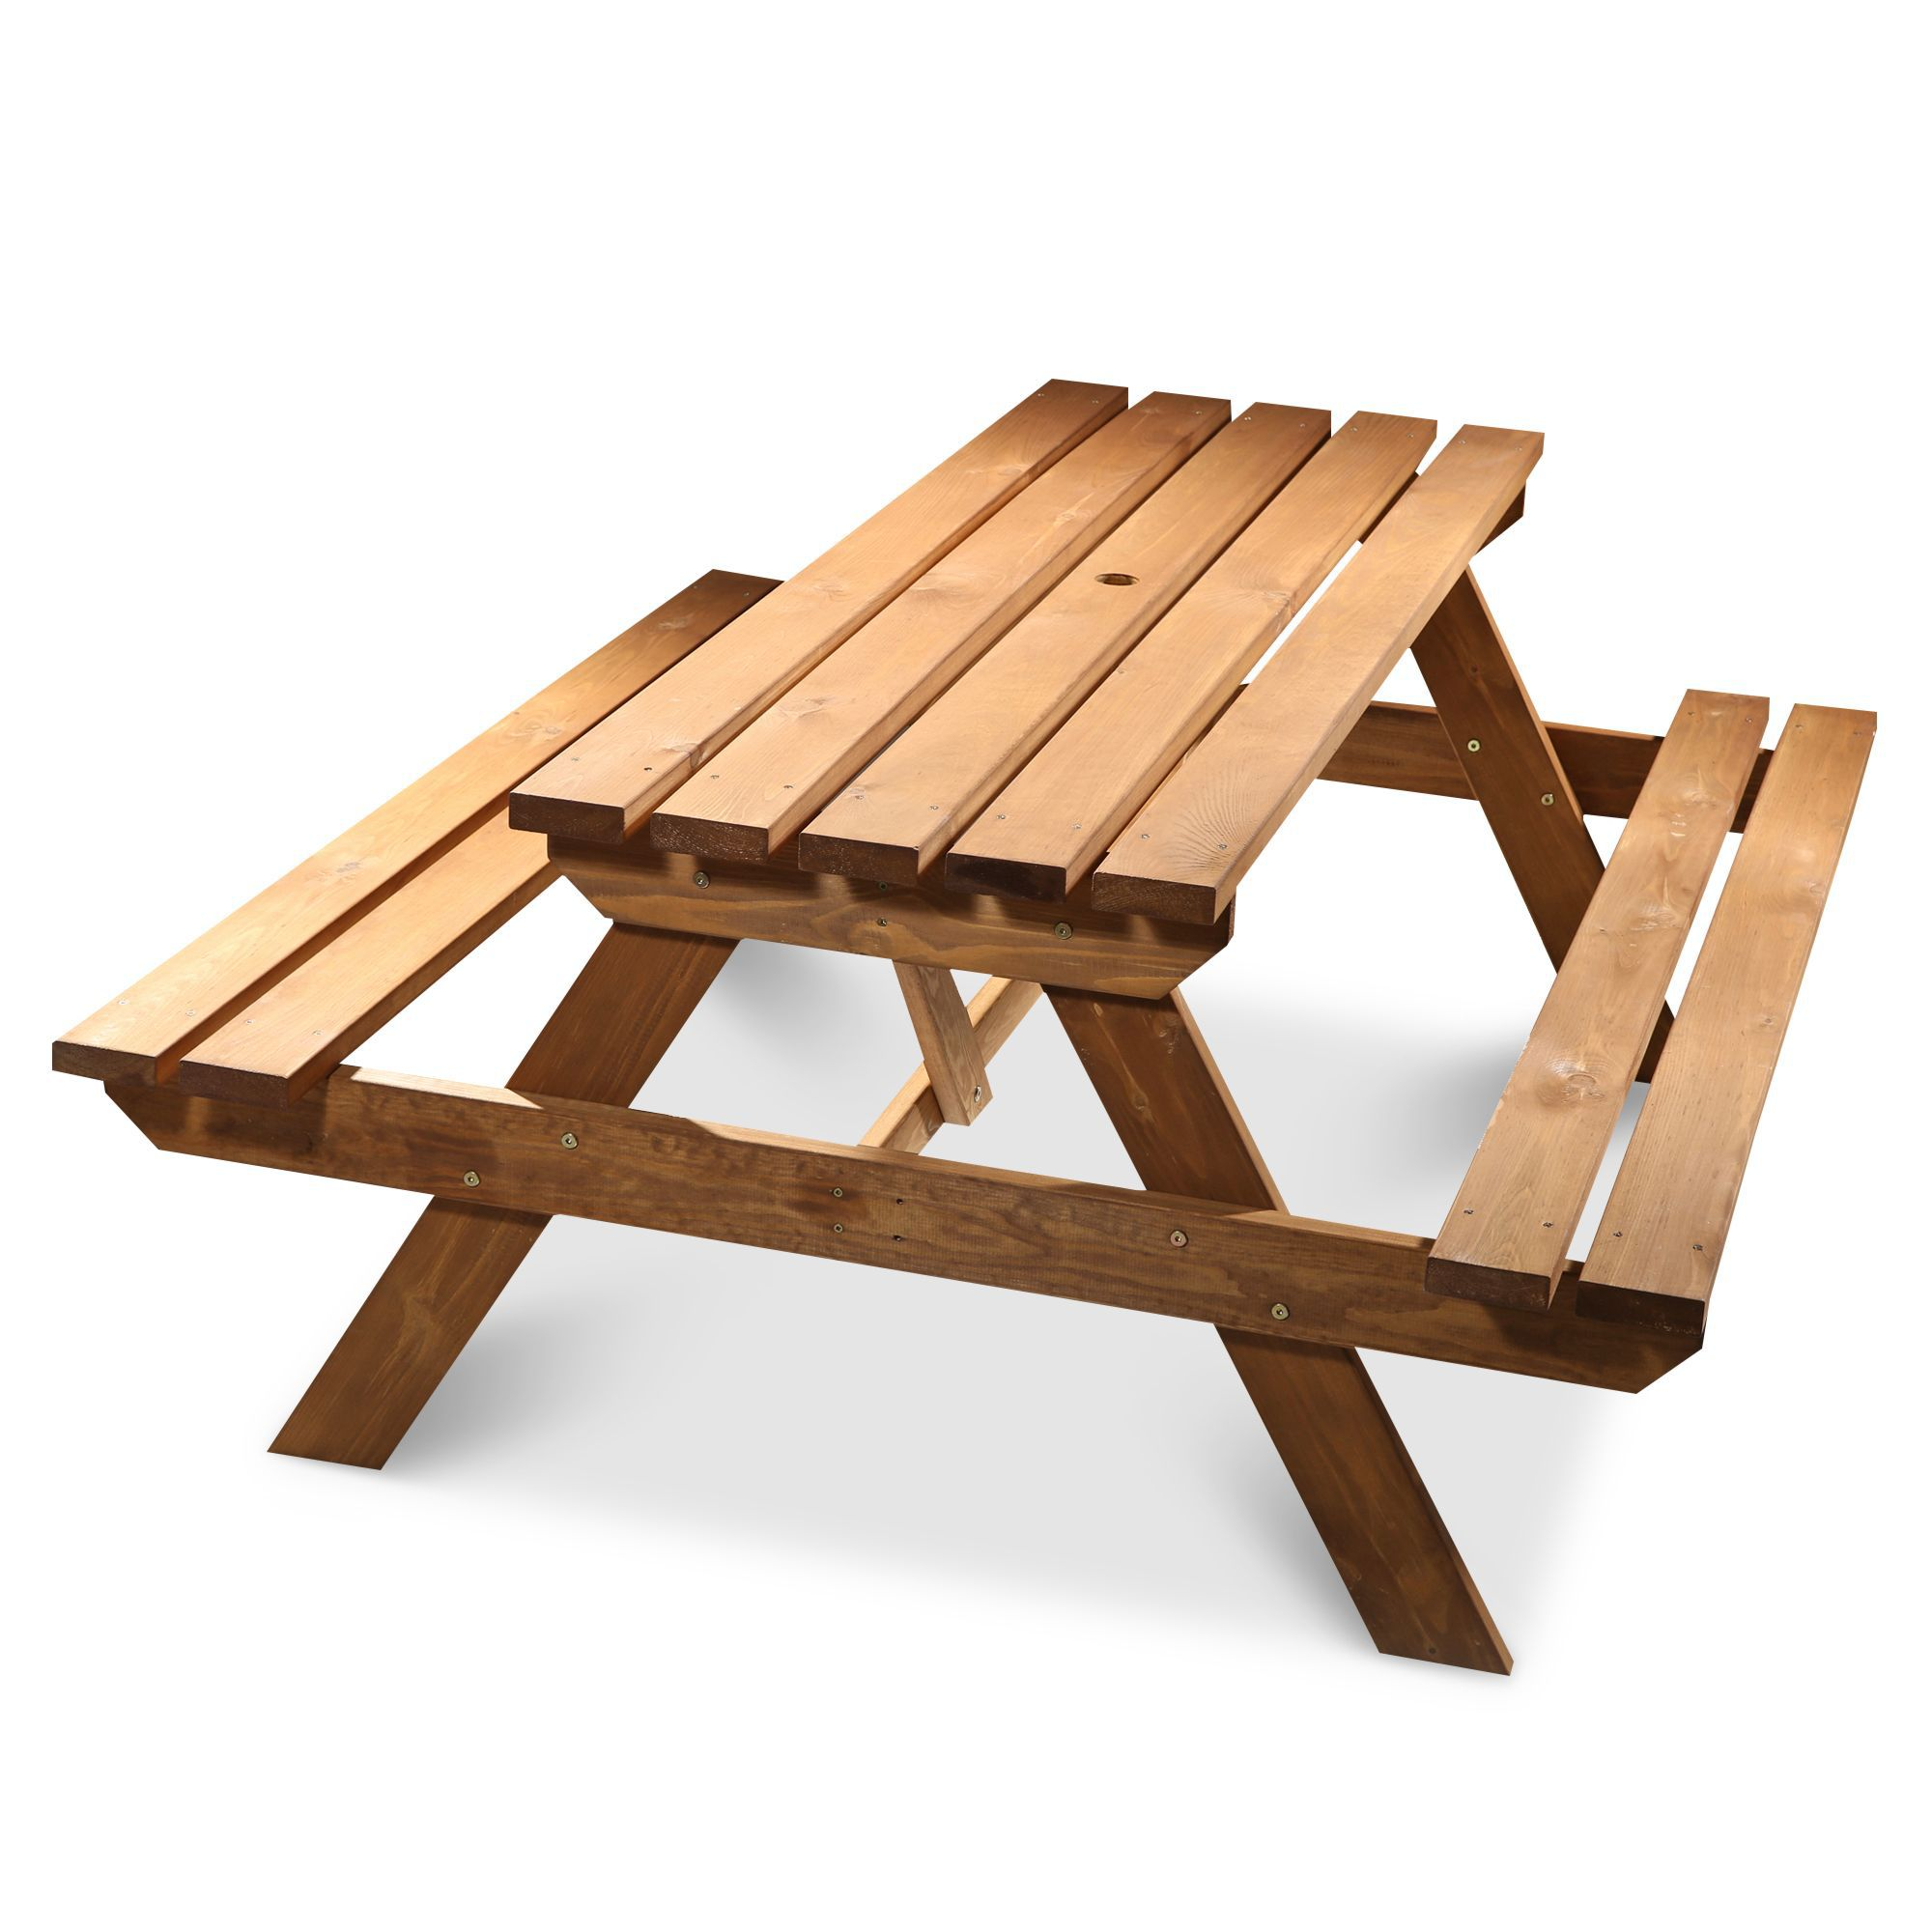 Agad Wooden 6 Seater Picnic Table Departments Diy At B Amp Q